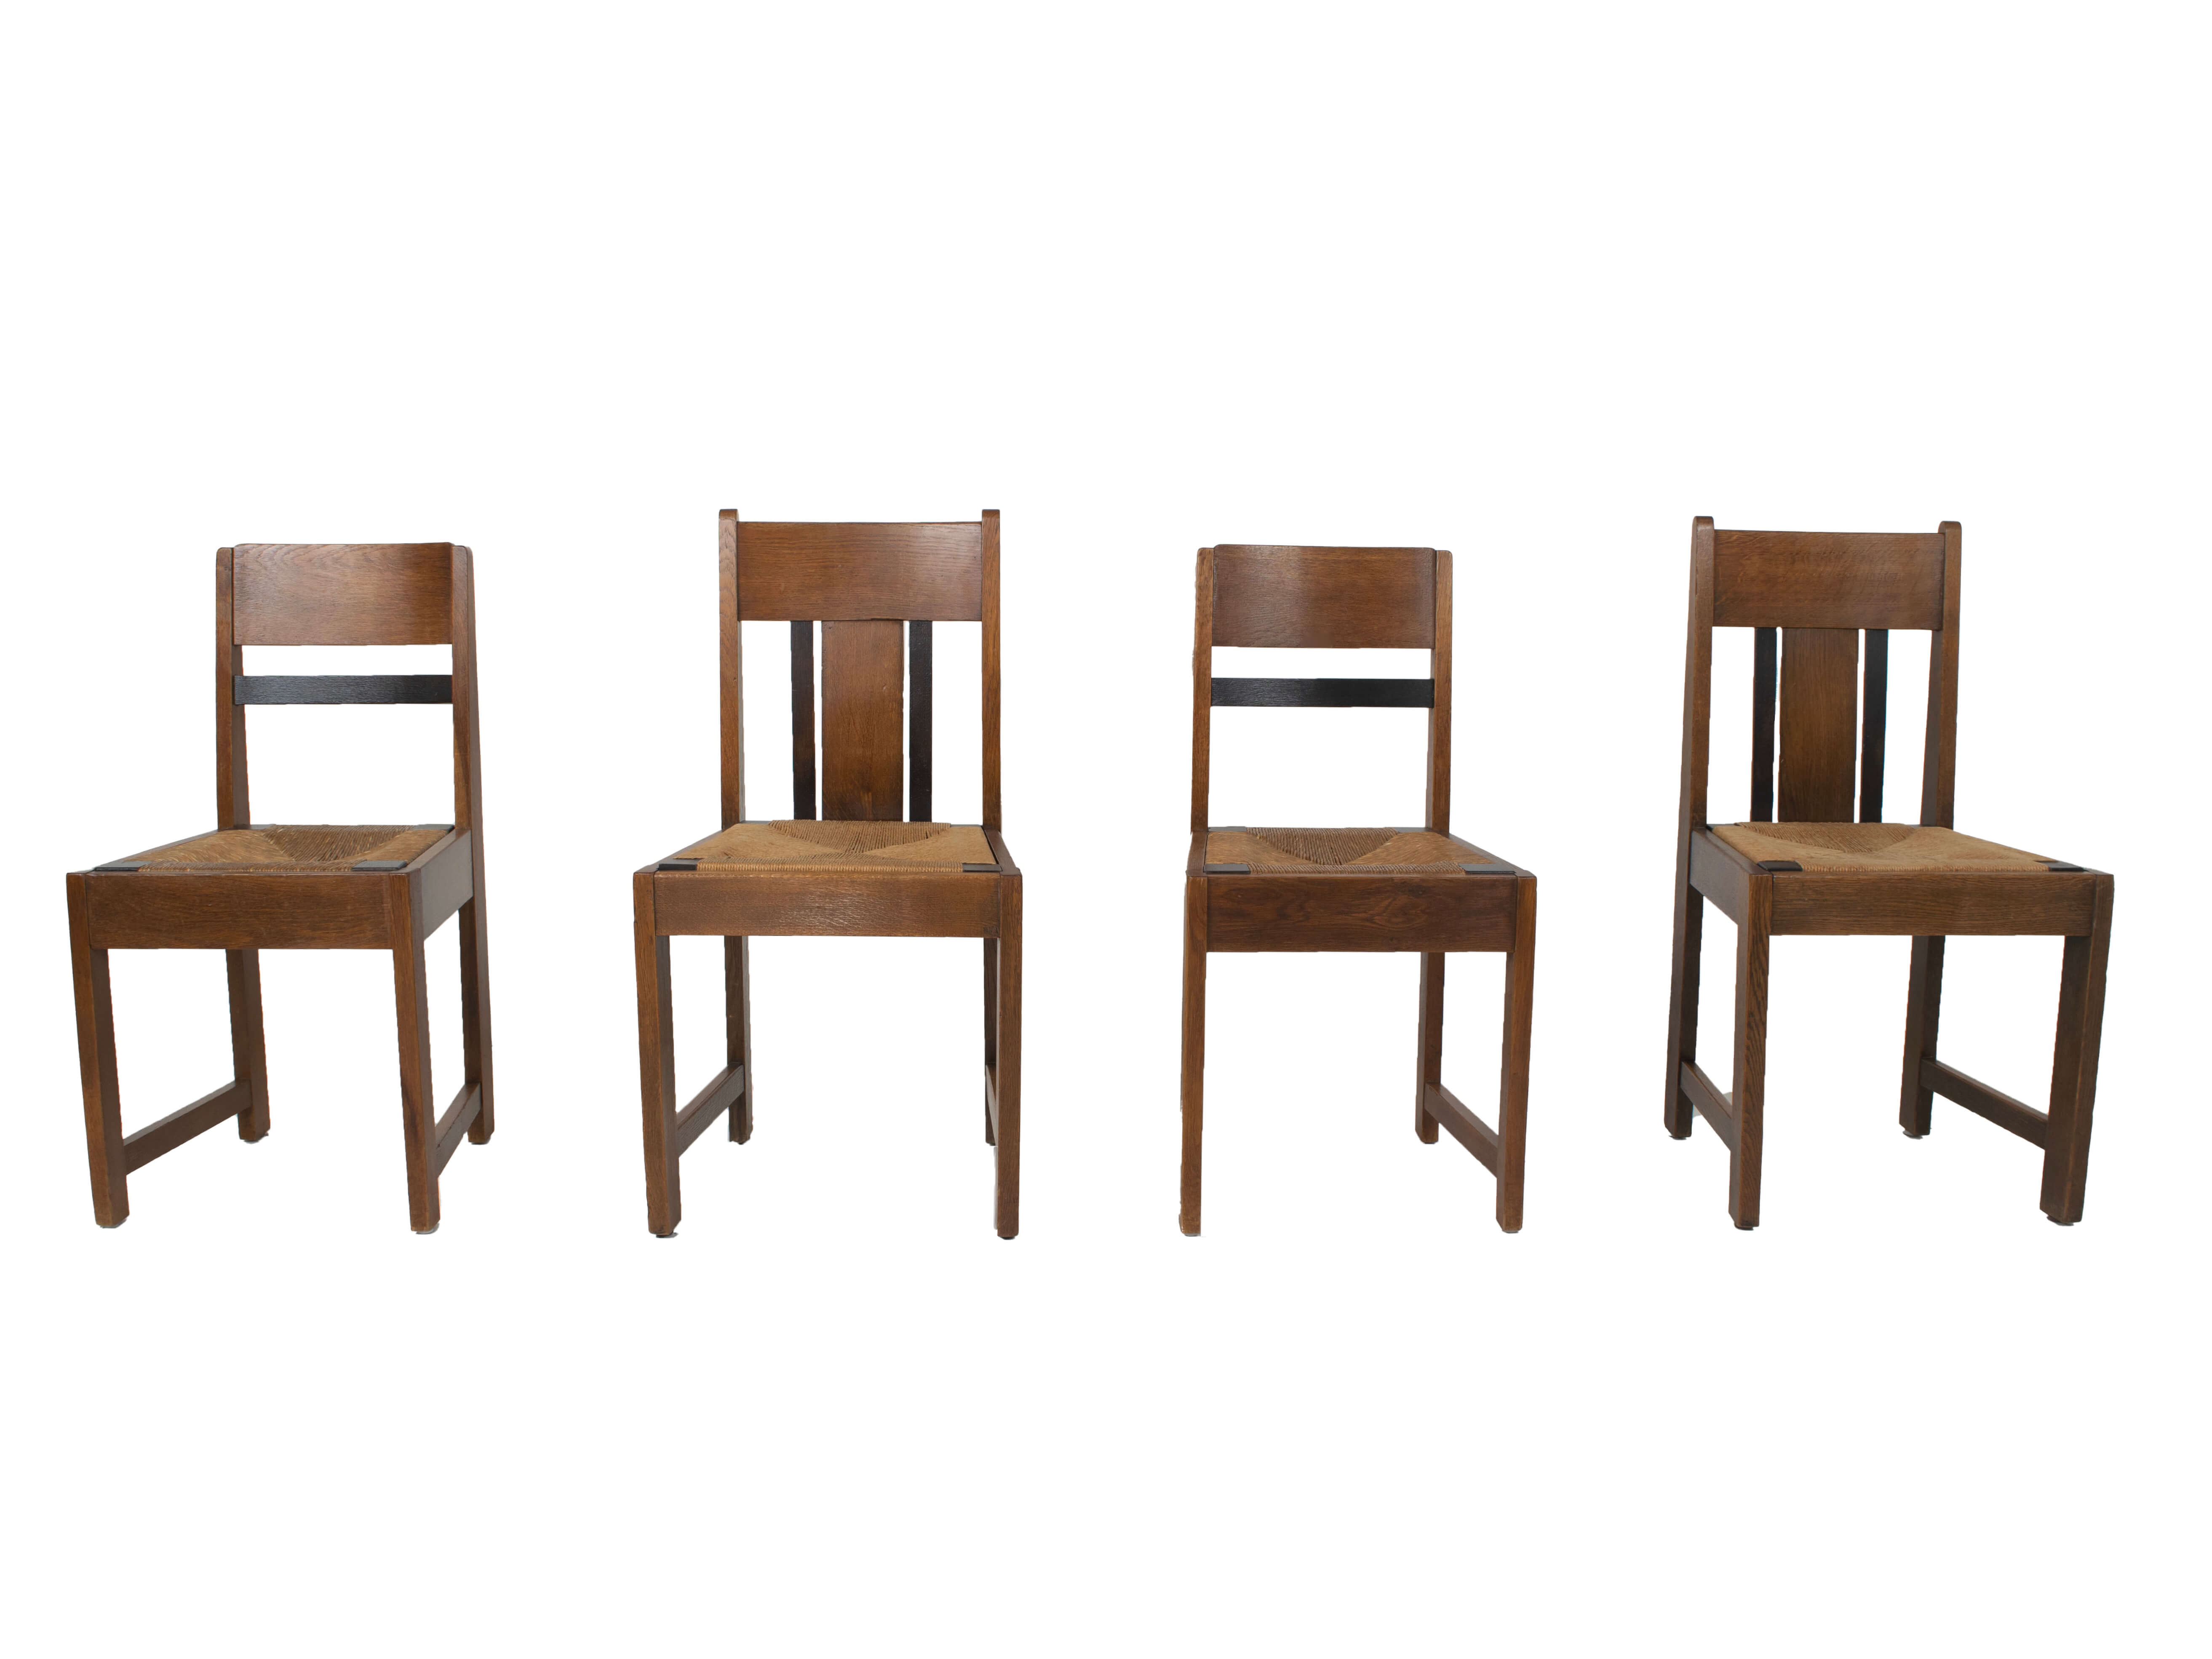 Set of Four Art Deco, Amsterdam School, Dining Chairs, The Netherlands 1930s